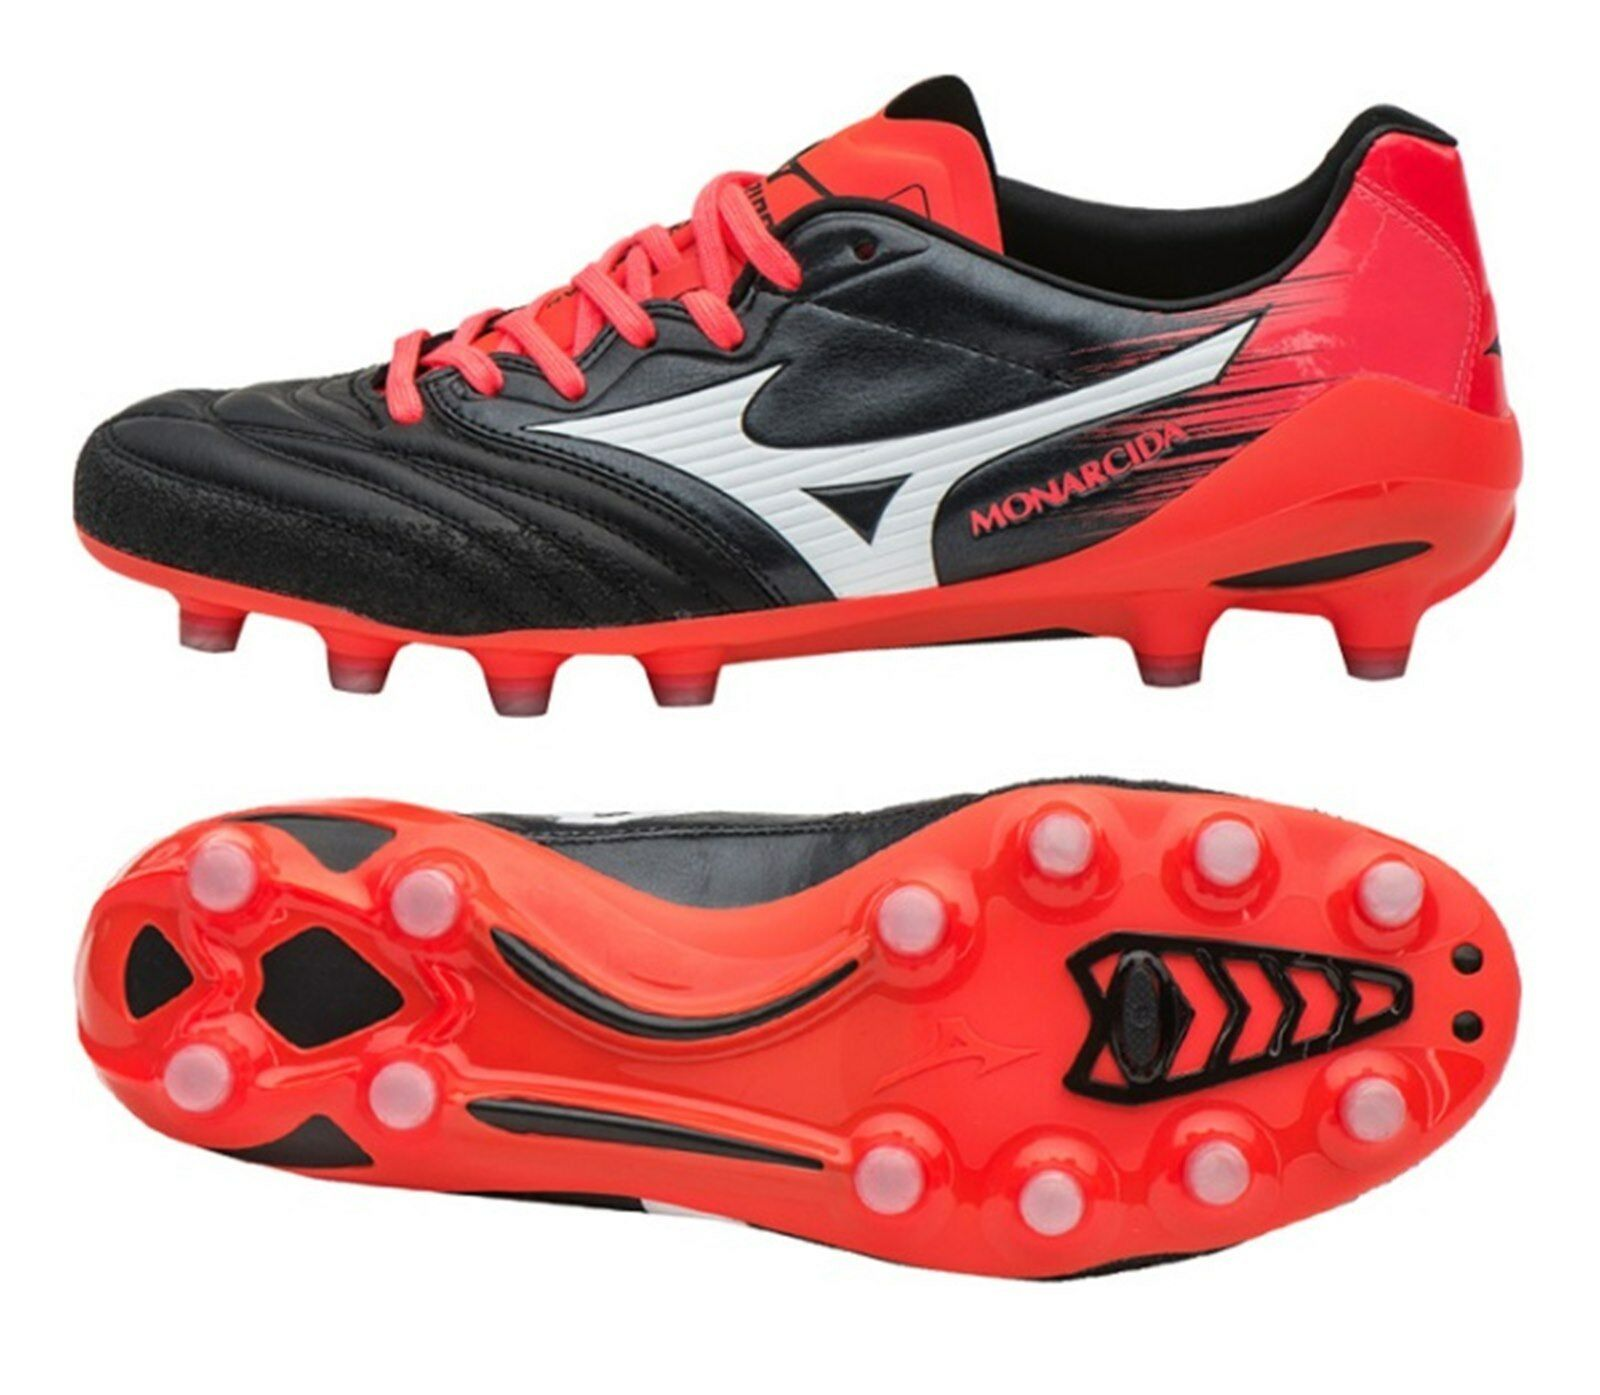 Mizuno Men Monarcida 2 Neo MD Cleats Soccer Football ROT Schuhes Spike P1GA172001